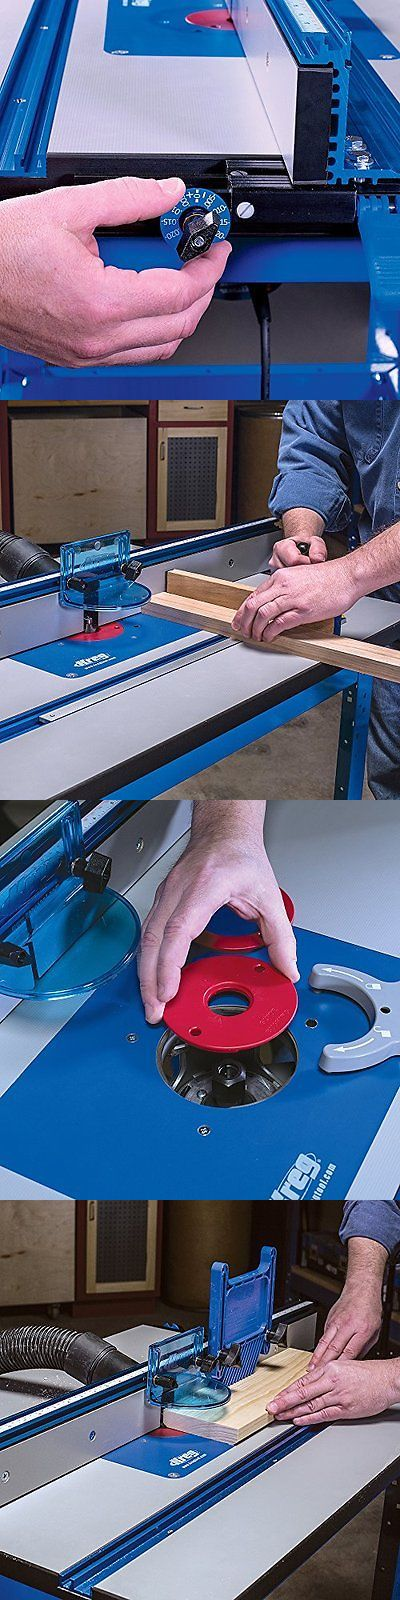 9 best router table images on pinterest tools woodworking and router tables 75680 kreg prs1045 precision router table system buy it now only keyboard keysfo Images